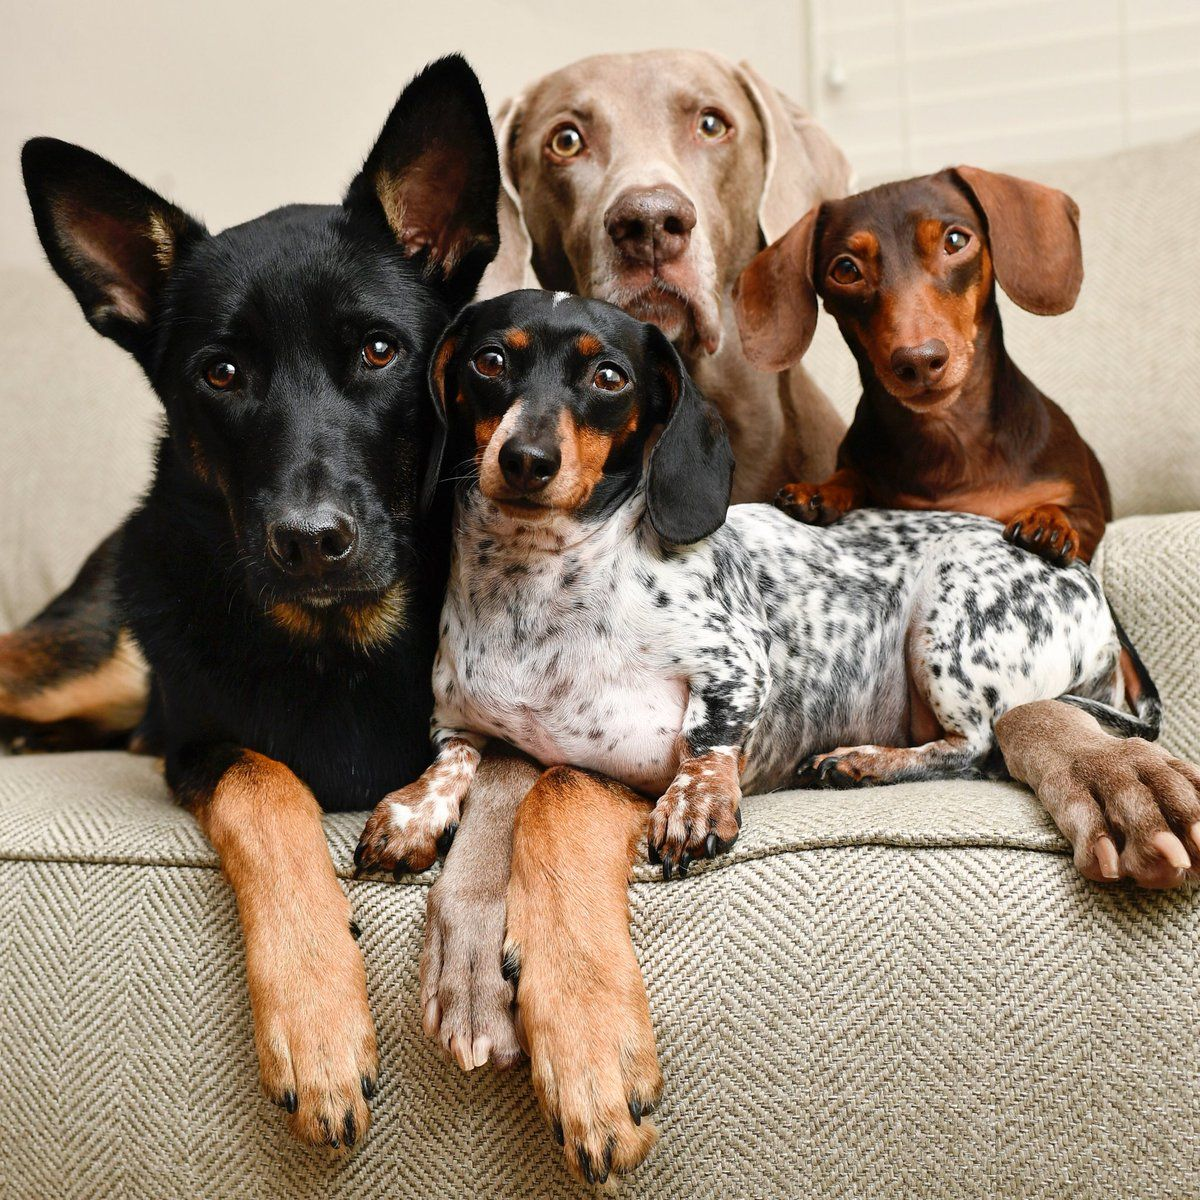 Family Portrait Dogs Dog Friends Dachshund Puppies